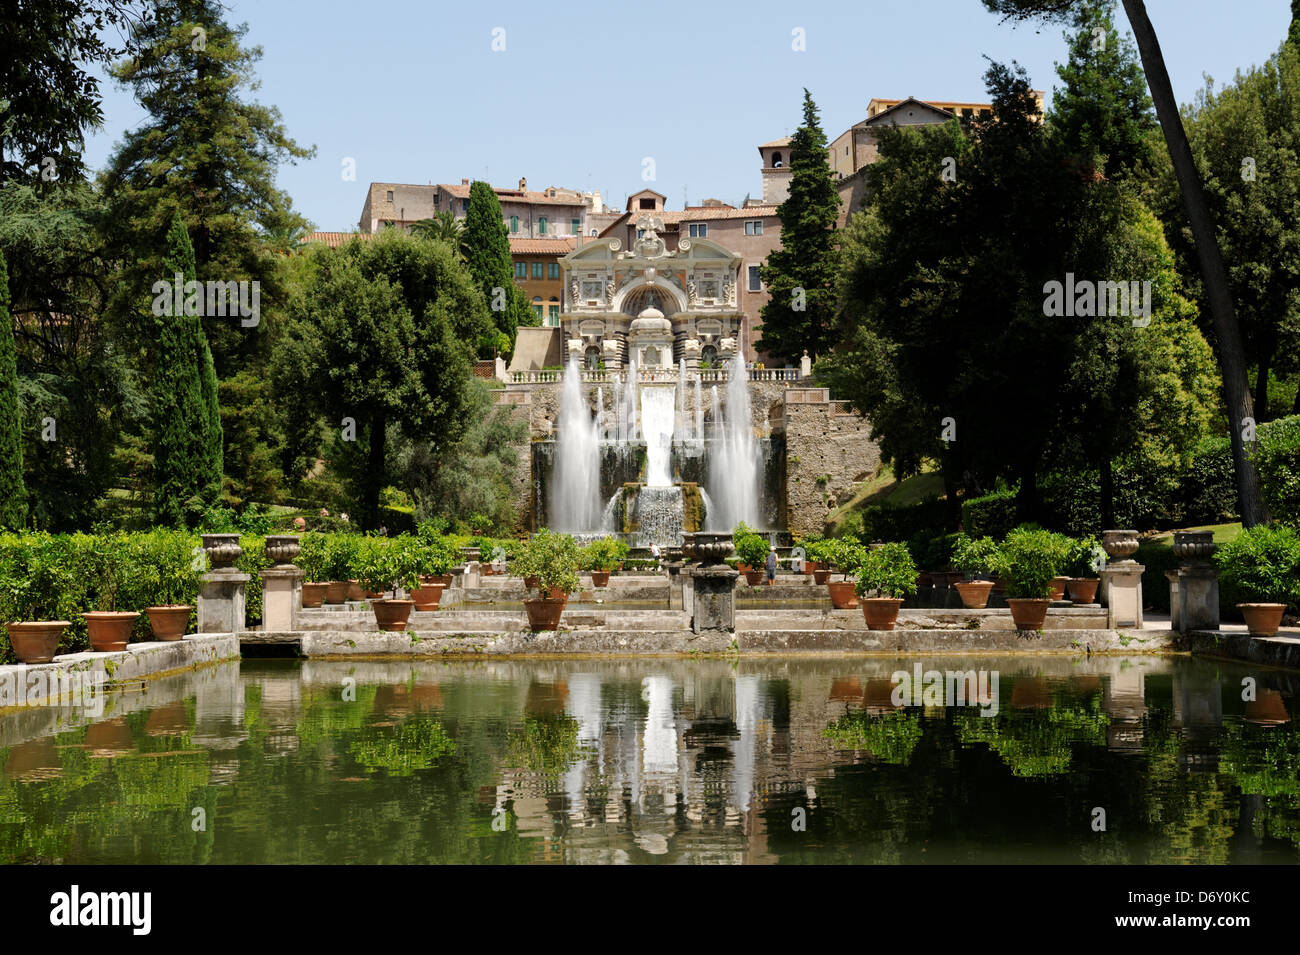 villa d este tivoli italy view over the level gardens and stock photo royalty free image. Black Bedroom Furniture Sets. Home Design Ideas